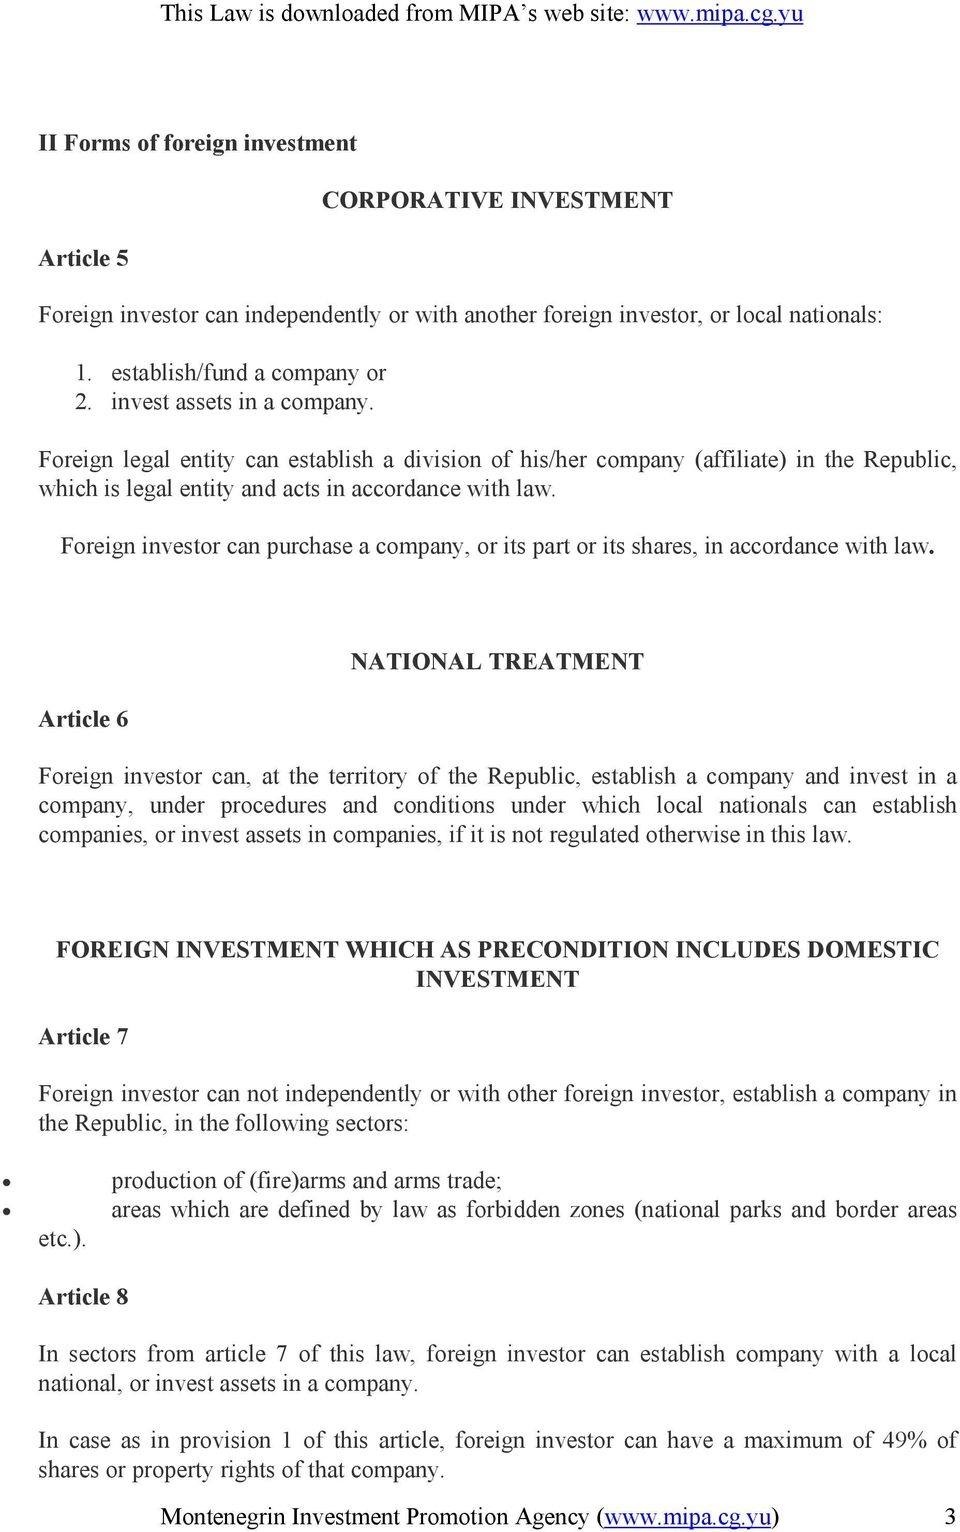 Foreign investor can purchase a company, or its part or its shares, in accordance with law.